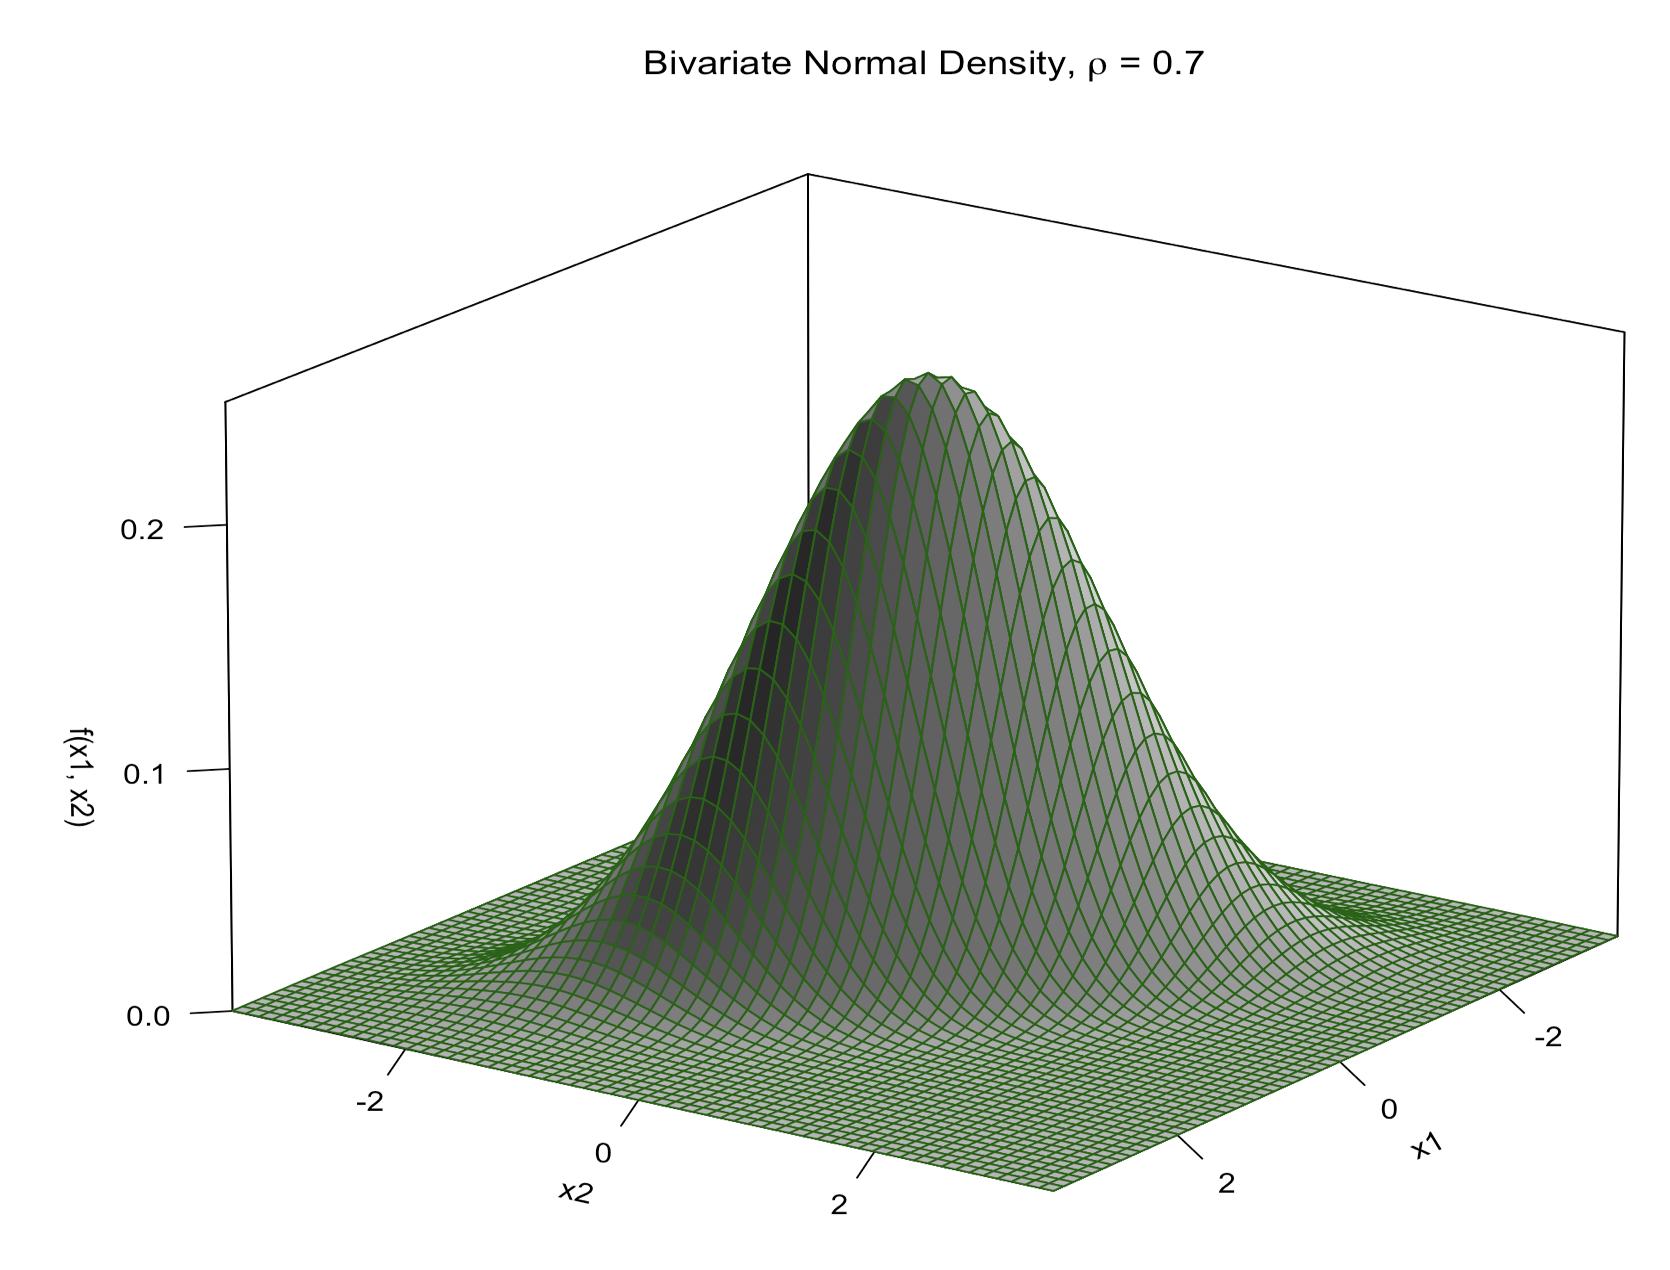 bivariate normal density plot